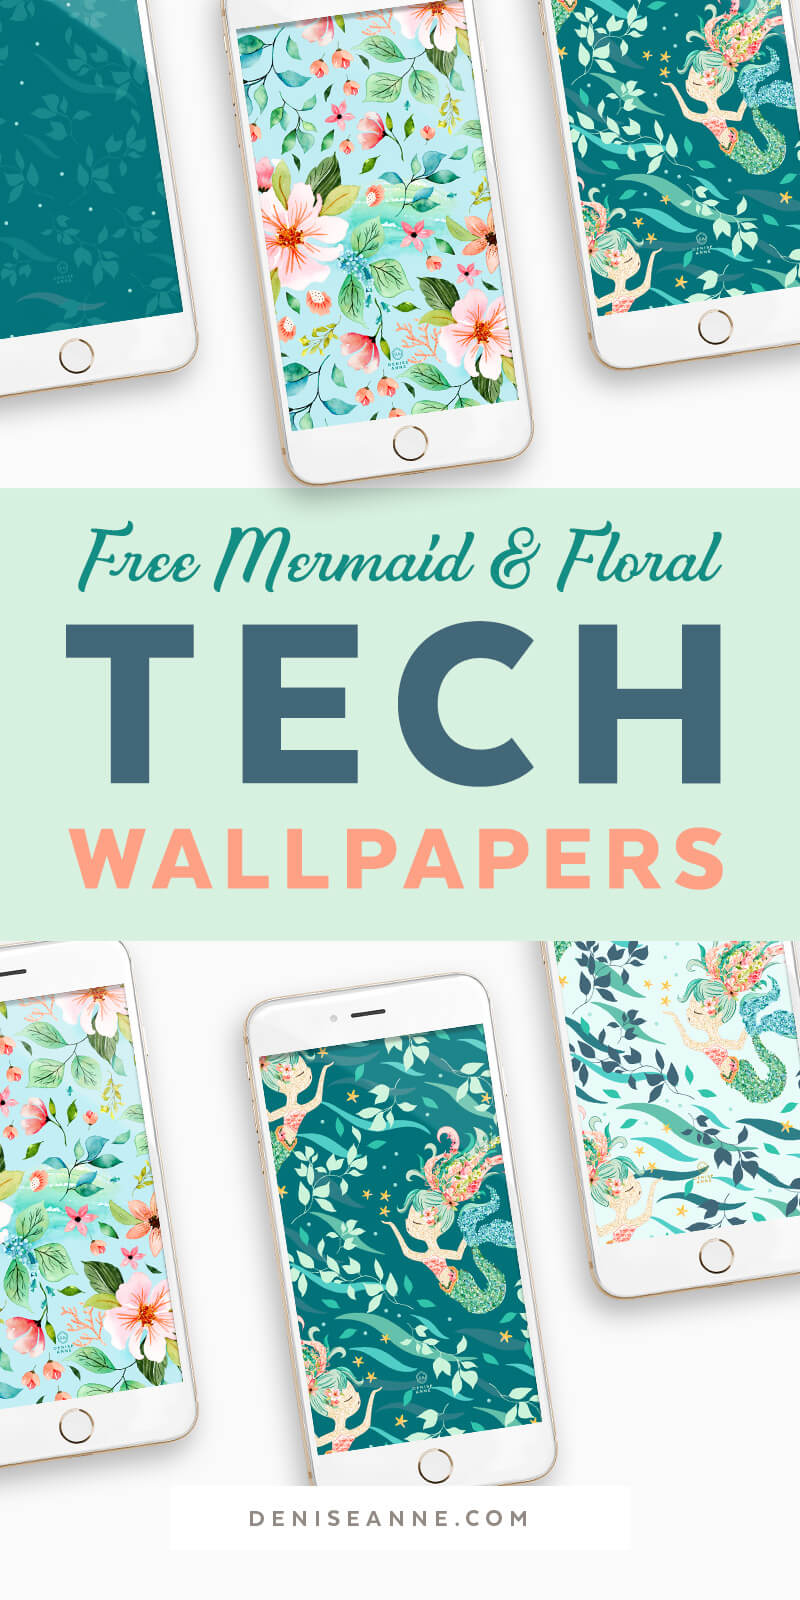 Free Mermaid Tropical Floral Watercolor Phone Wallpaper Backgrounds